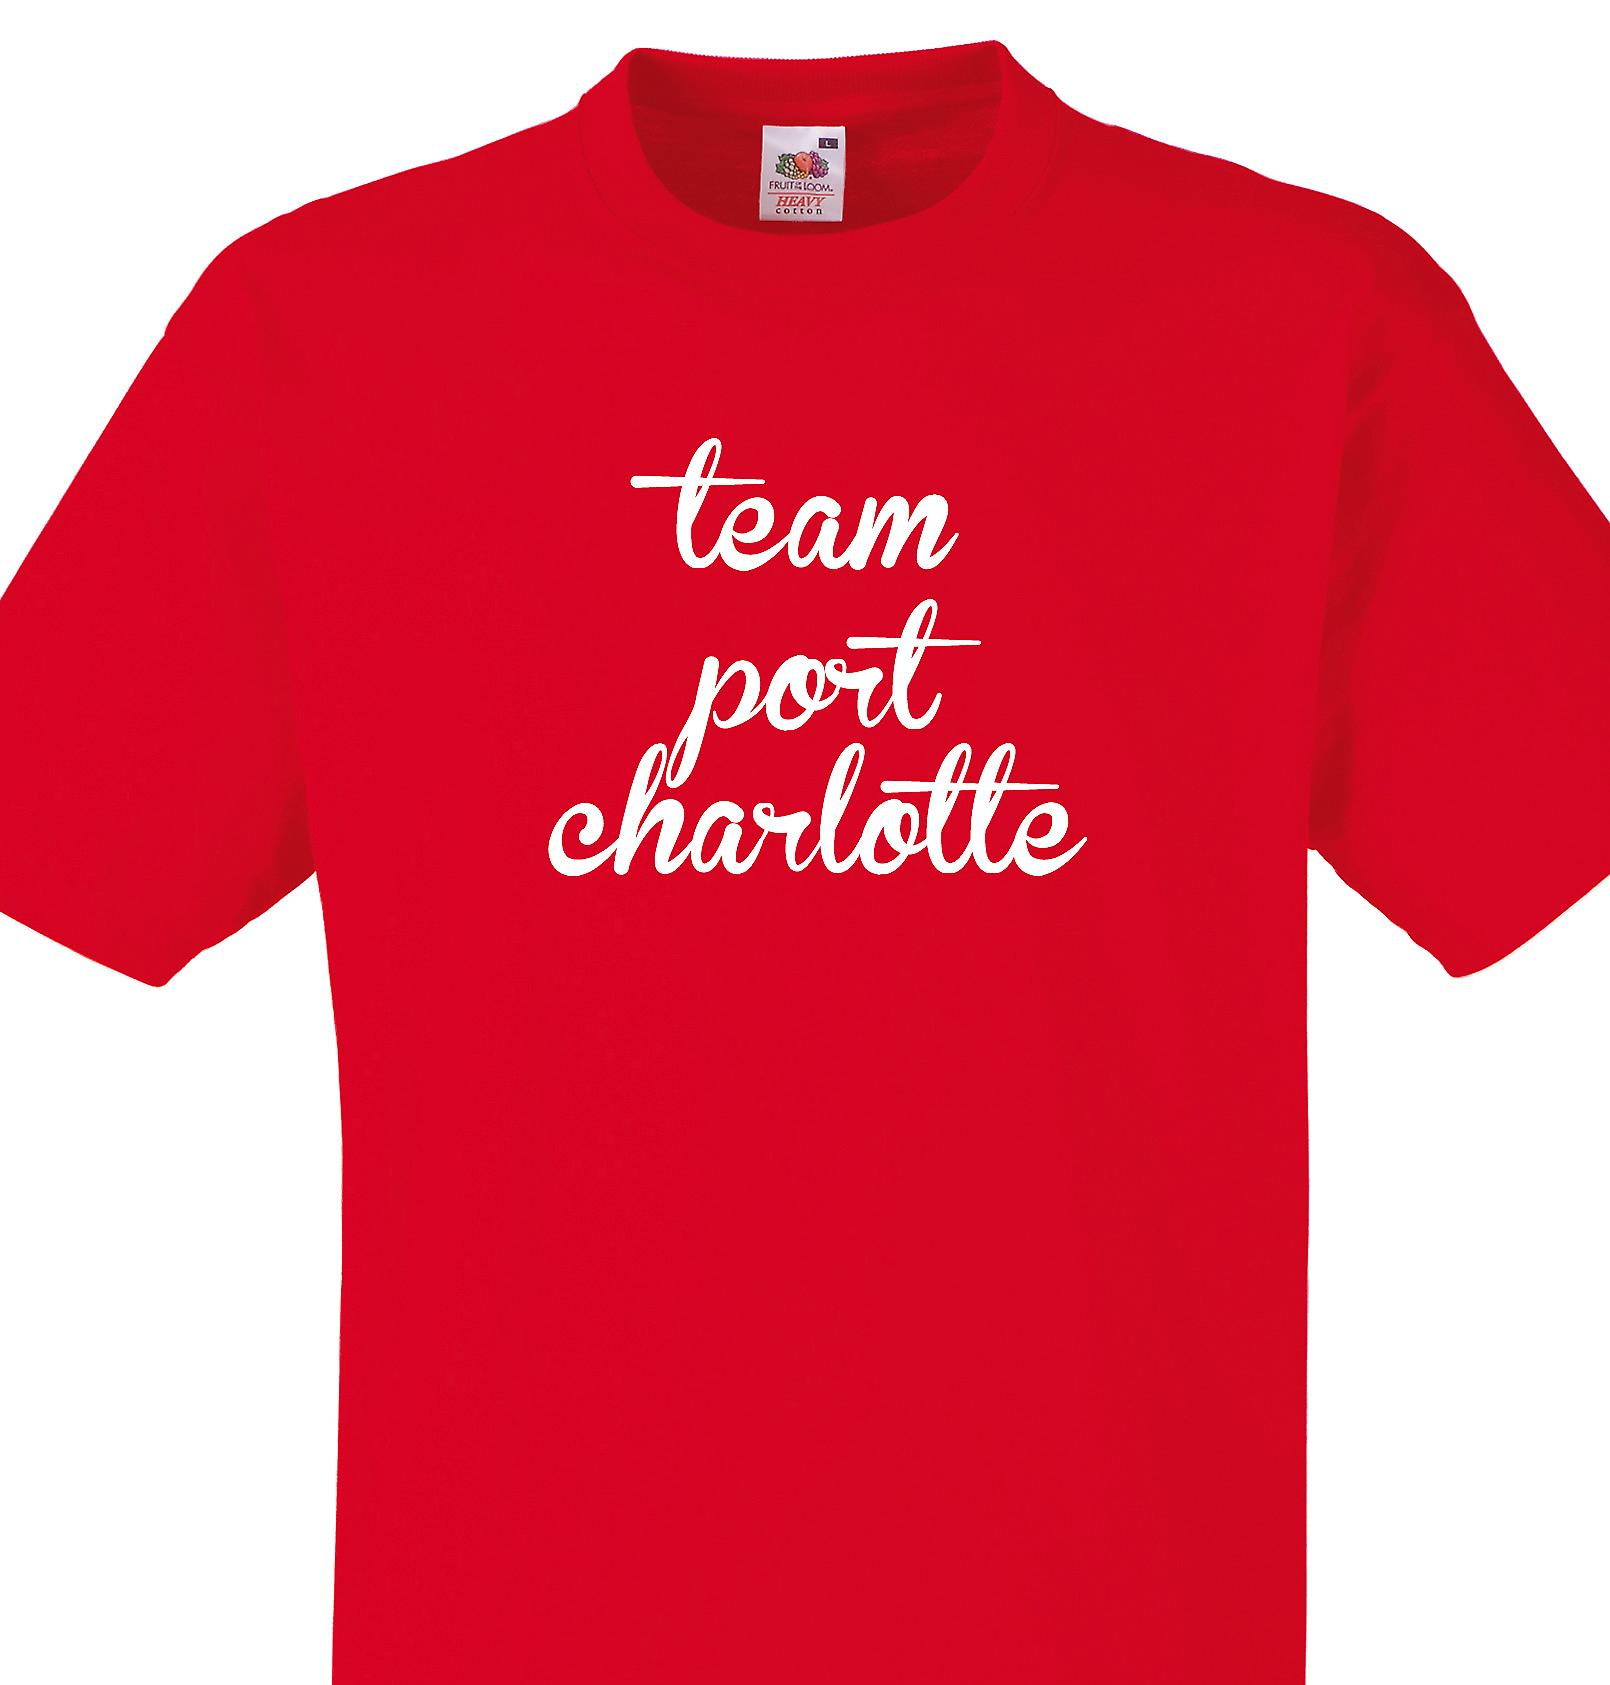 Team Port charlotte Red T shirt